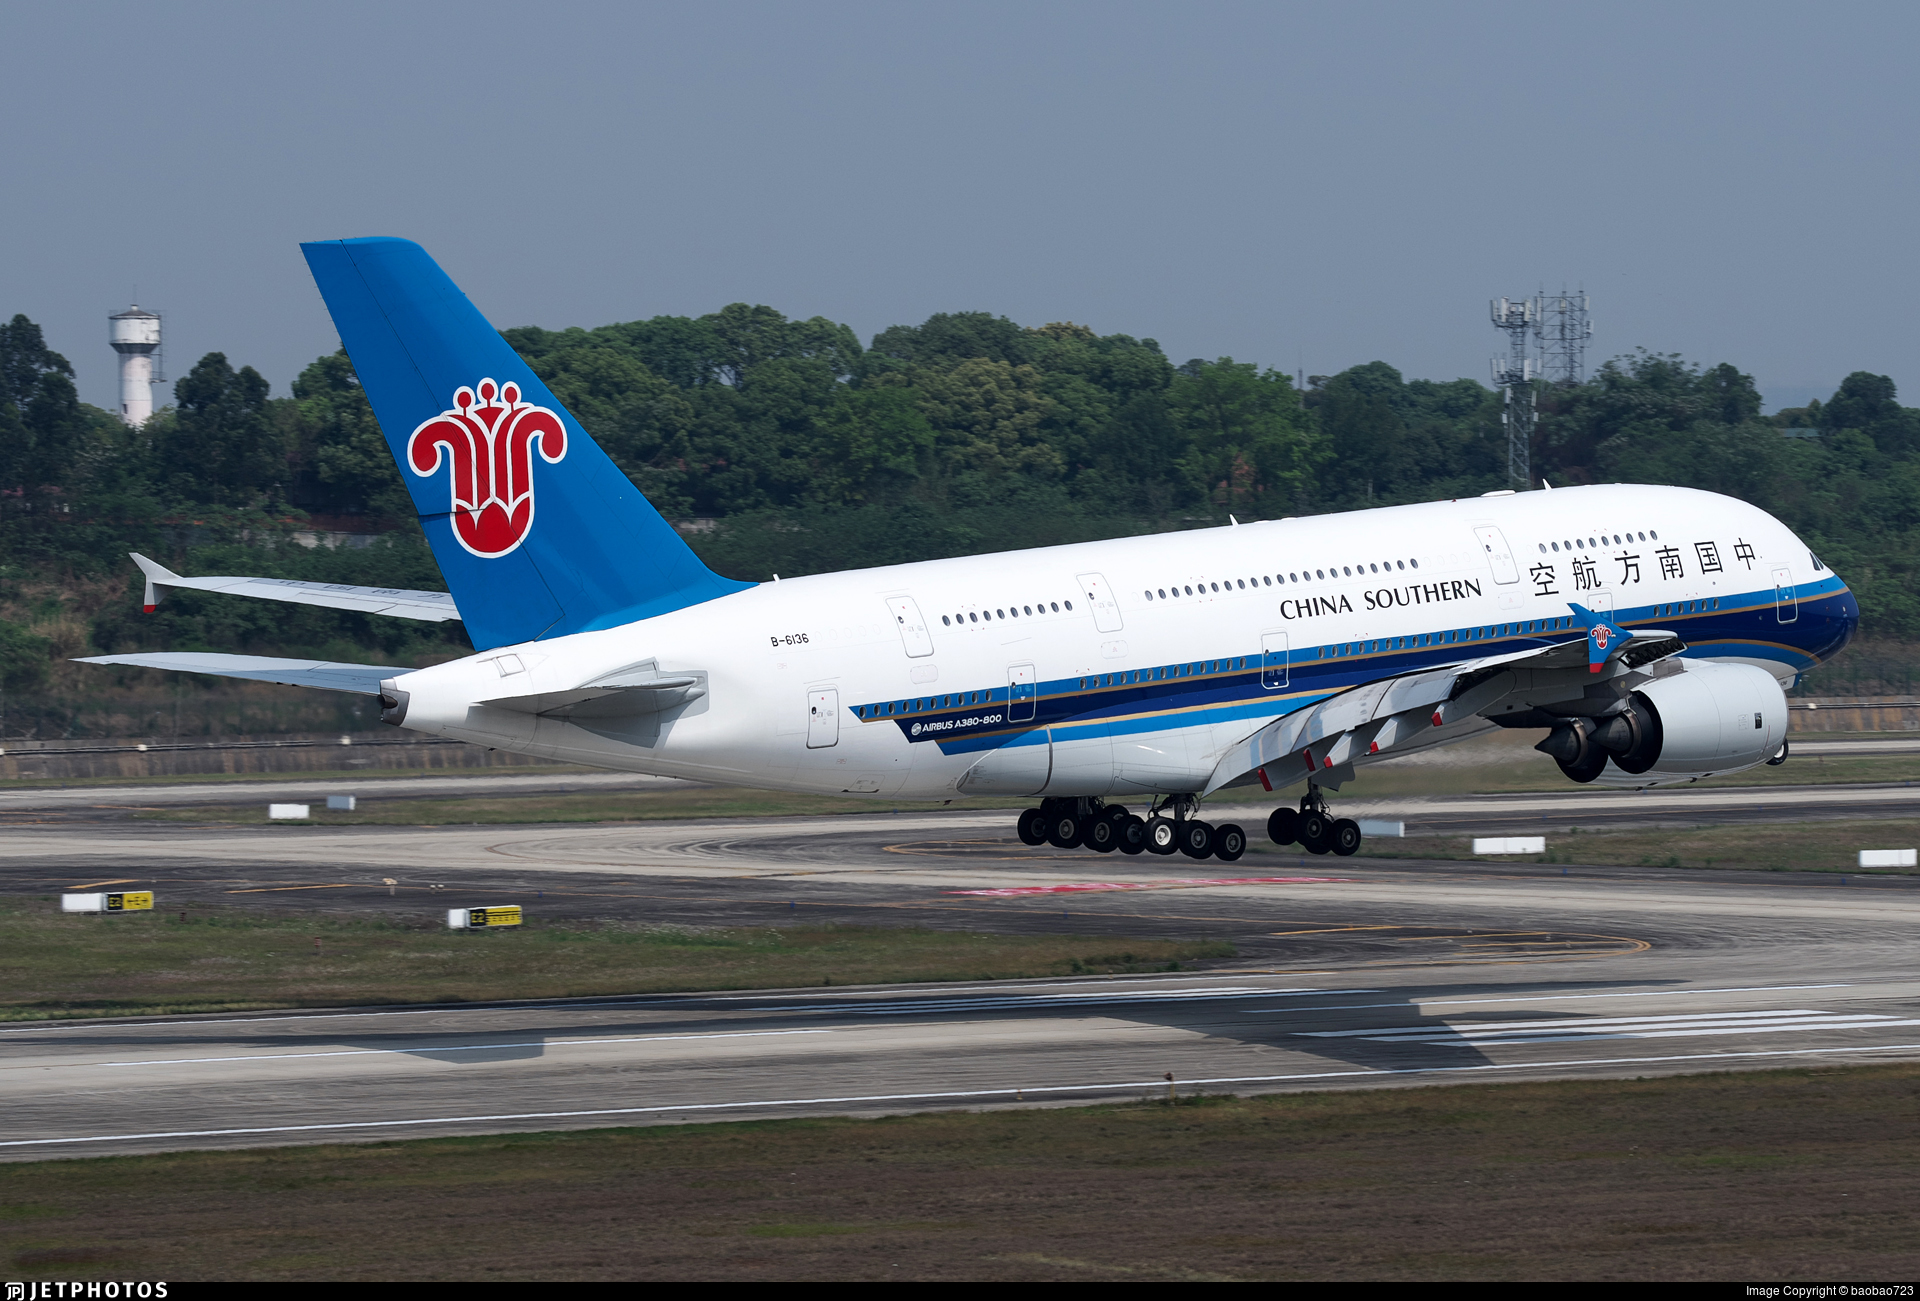 China Southern Guangzhou Chengdu China A380 where are A380s flying now